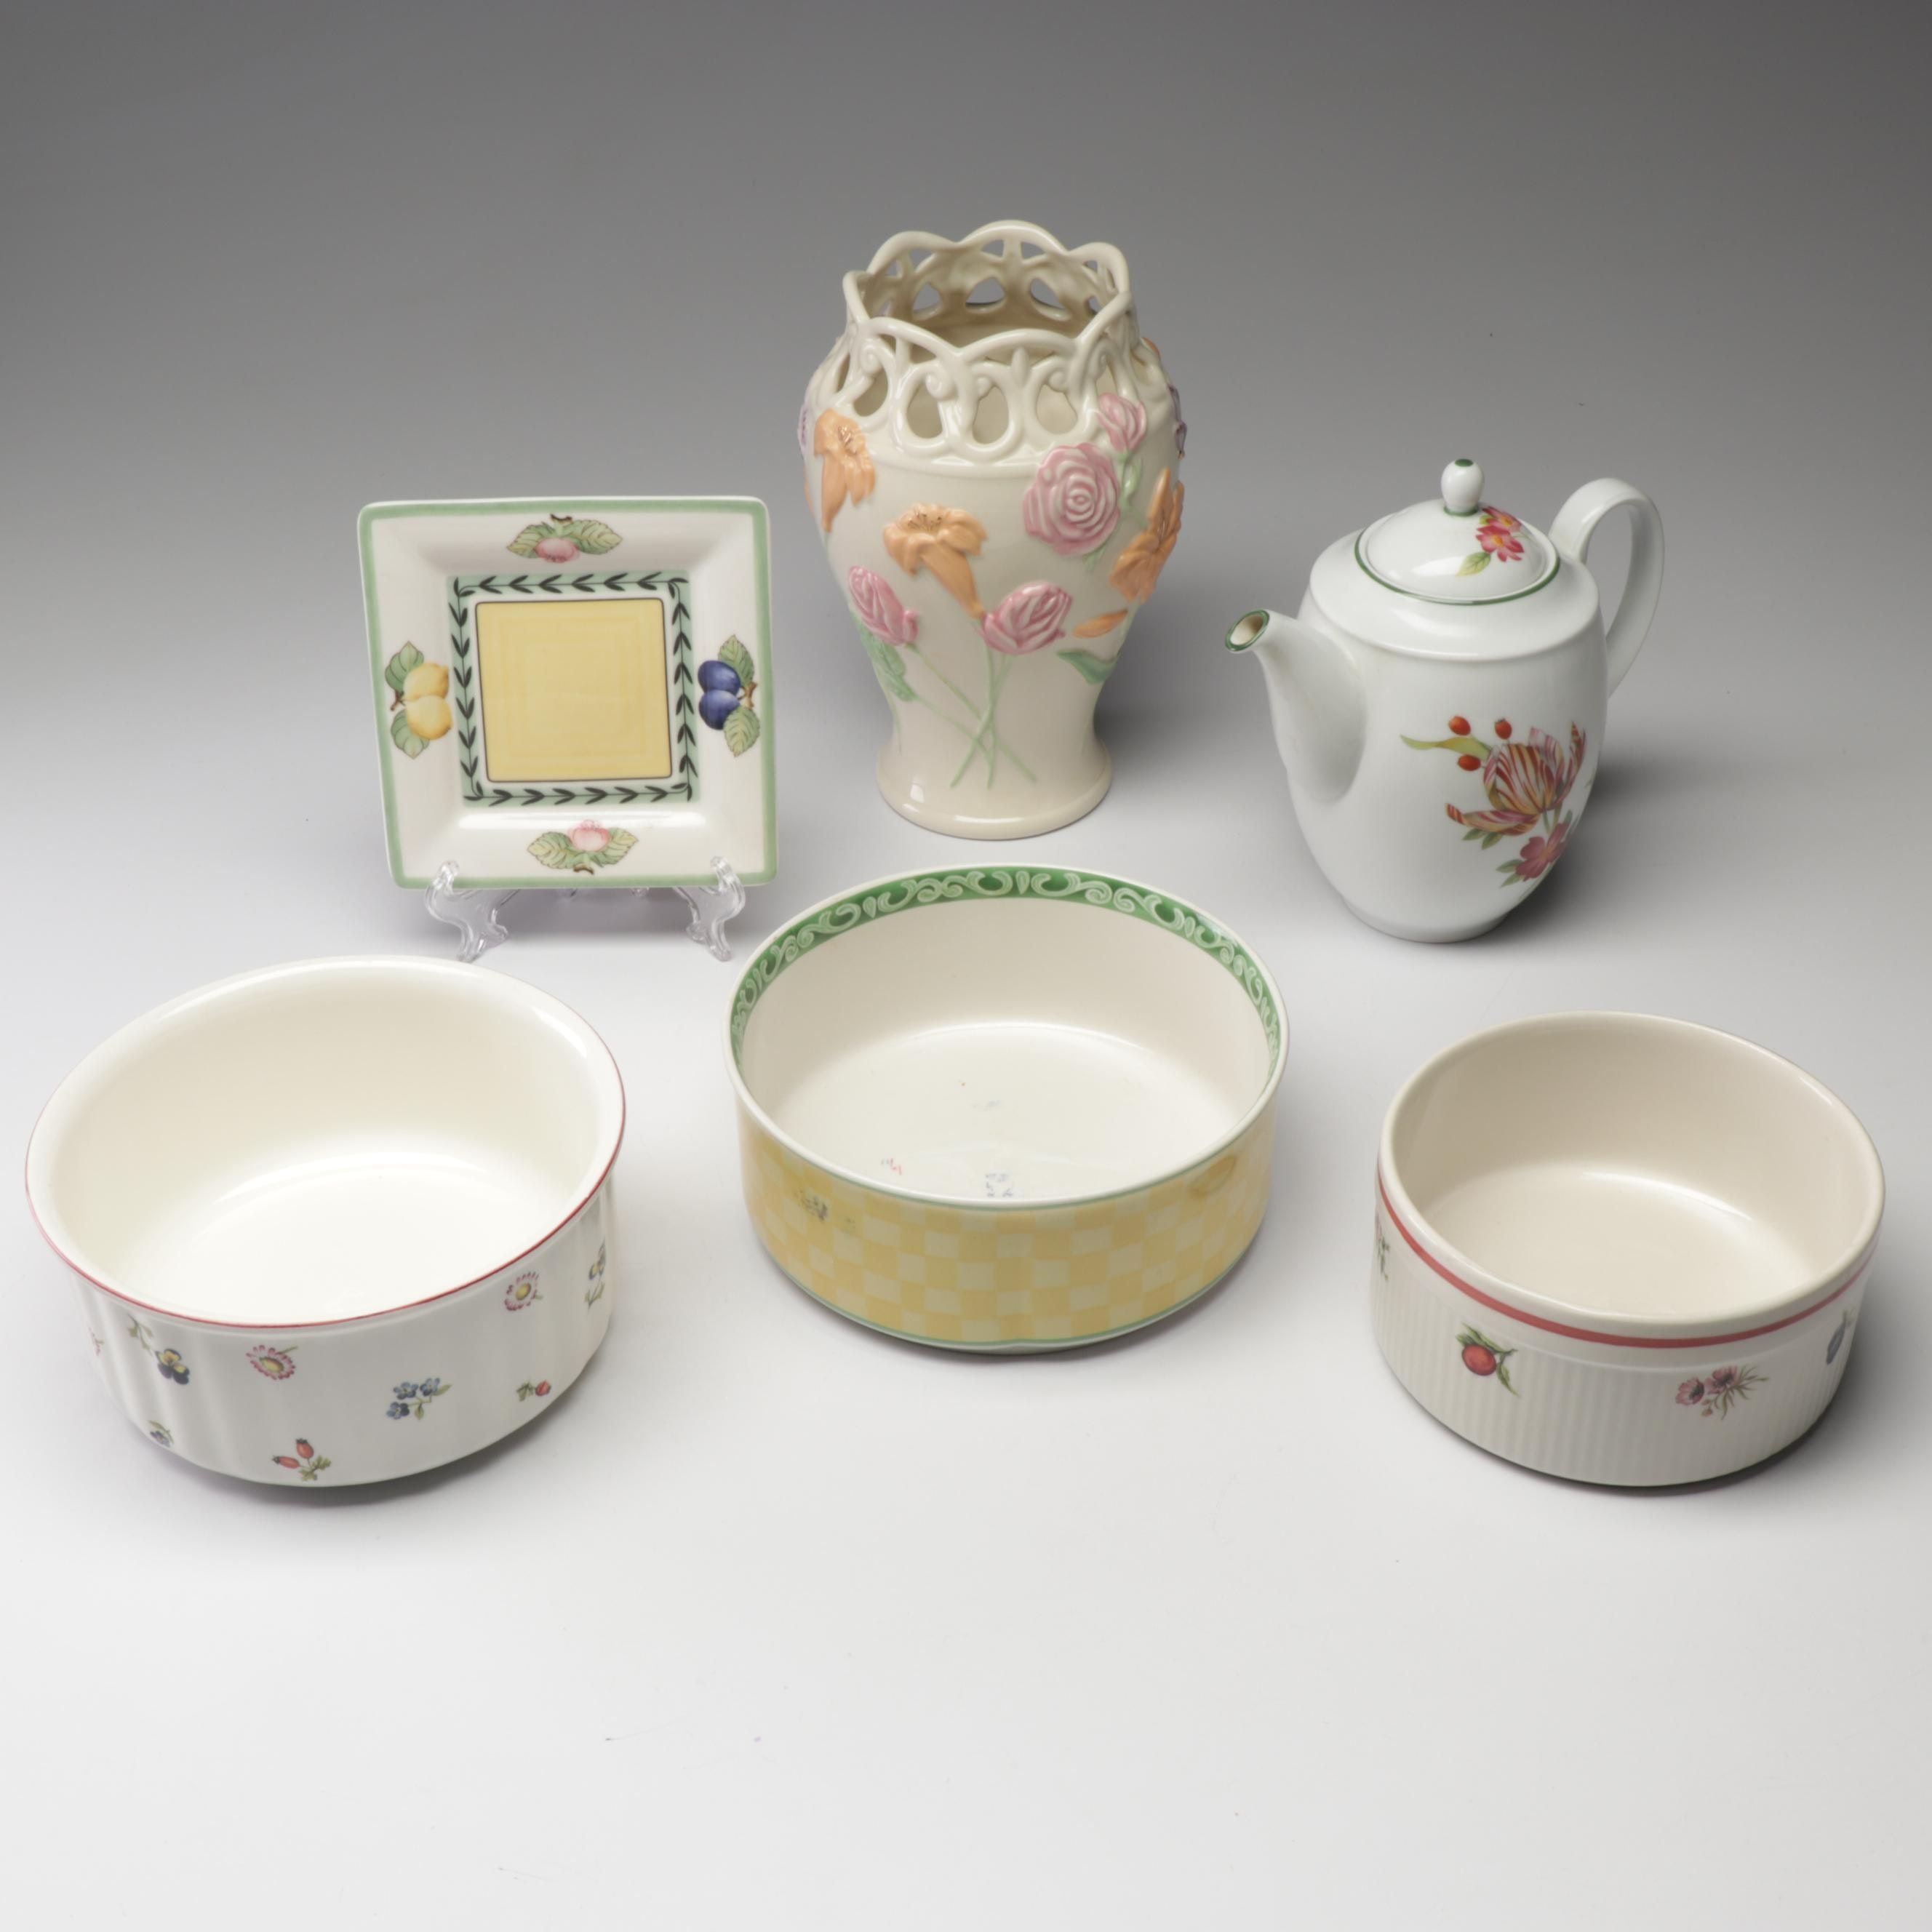 Lenox, Royal Worcester and Other Porcelain Tableware and Decor